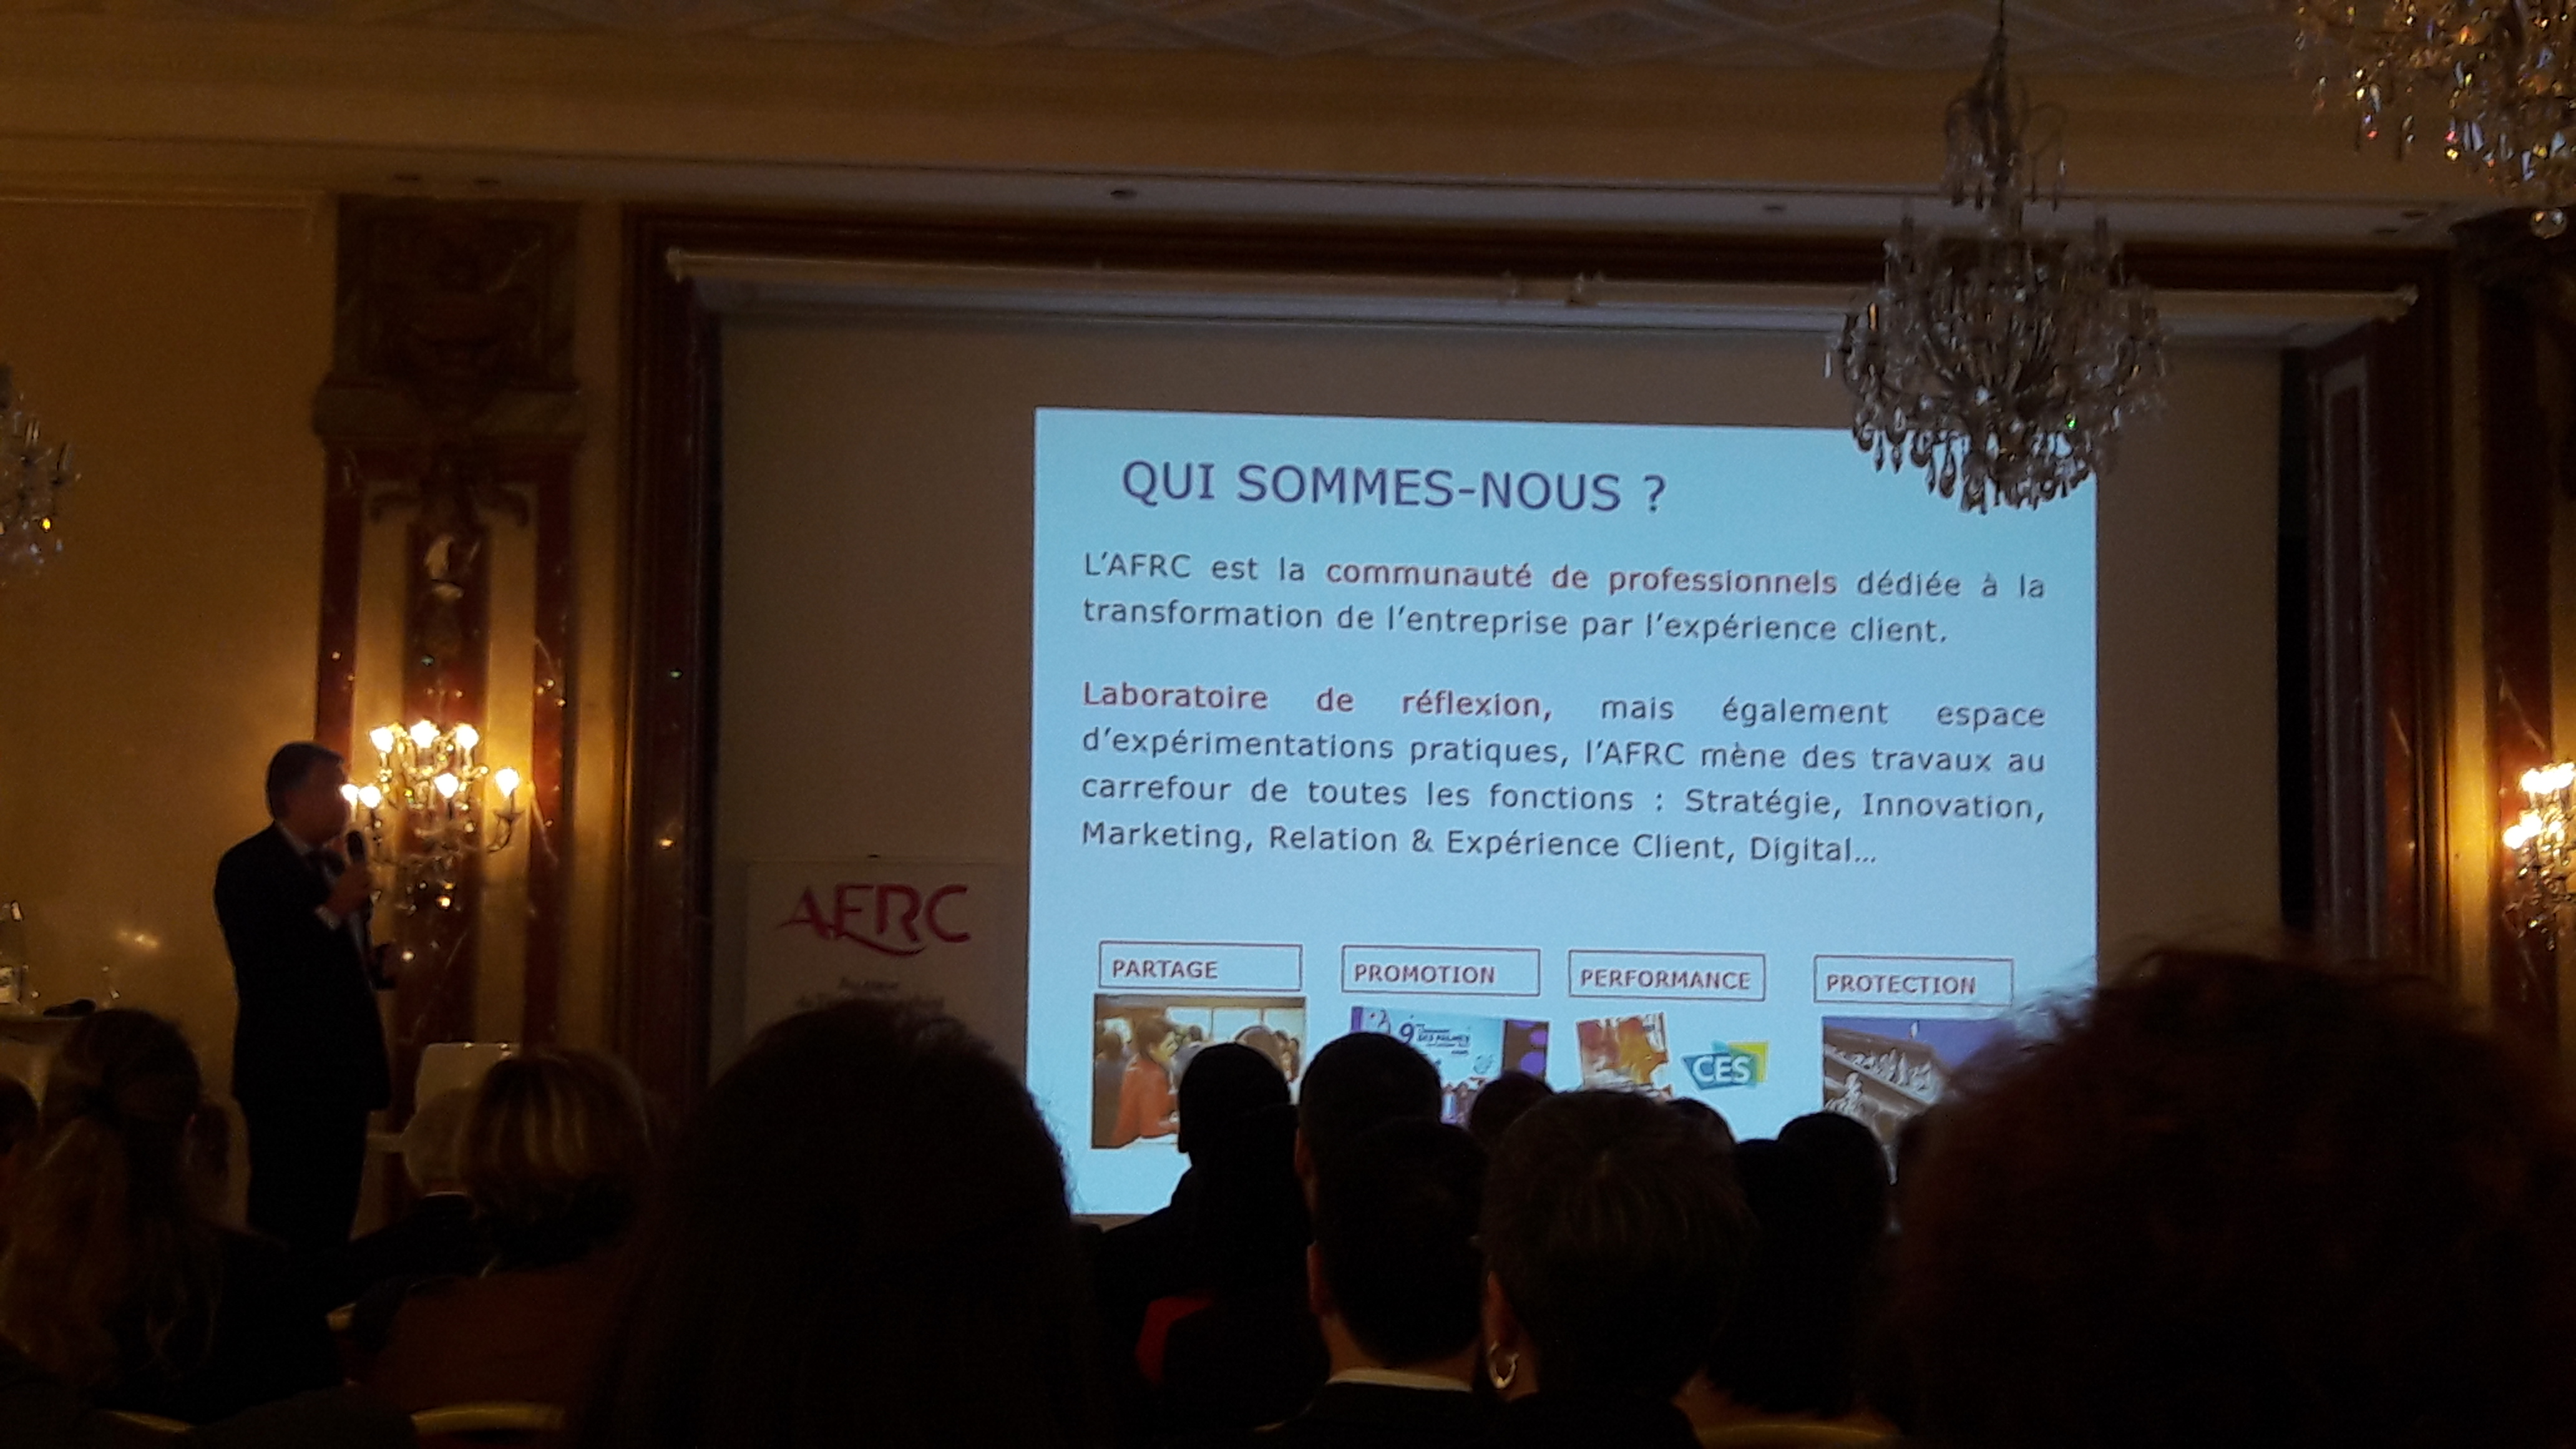 Intelligence Artificielle et Relation Client, quels seront les impacts ? La vision de l'AFRC 3